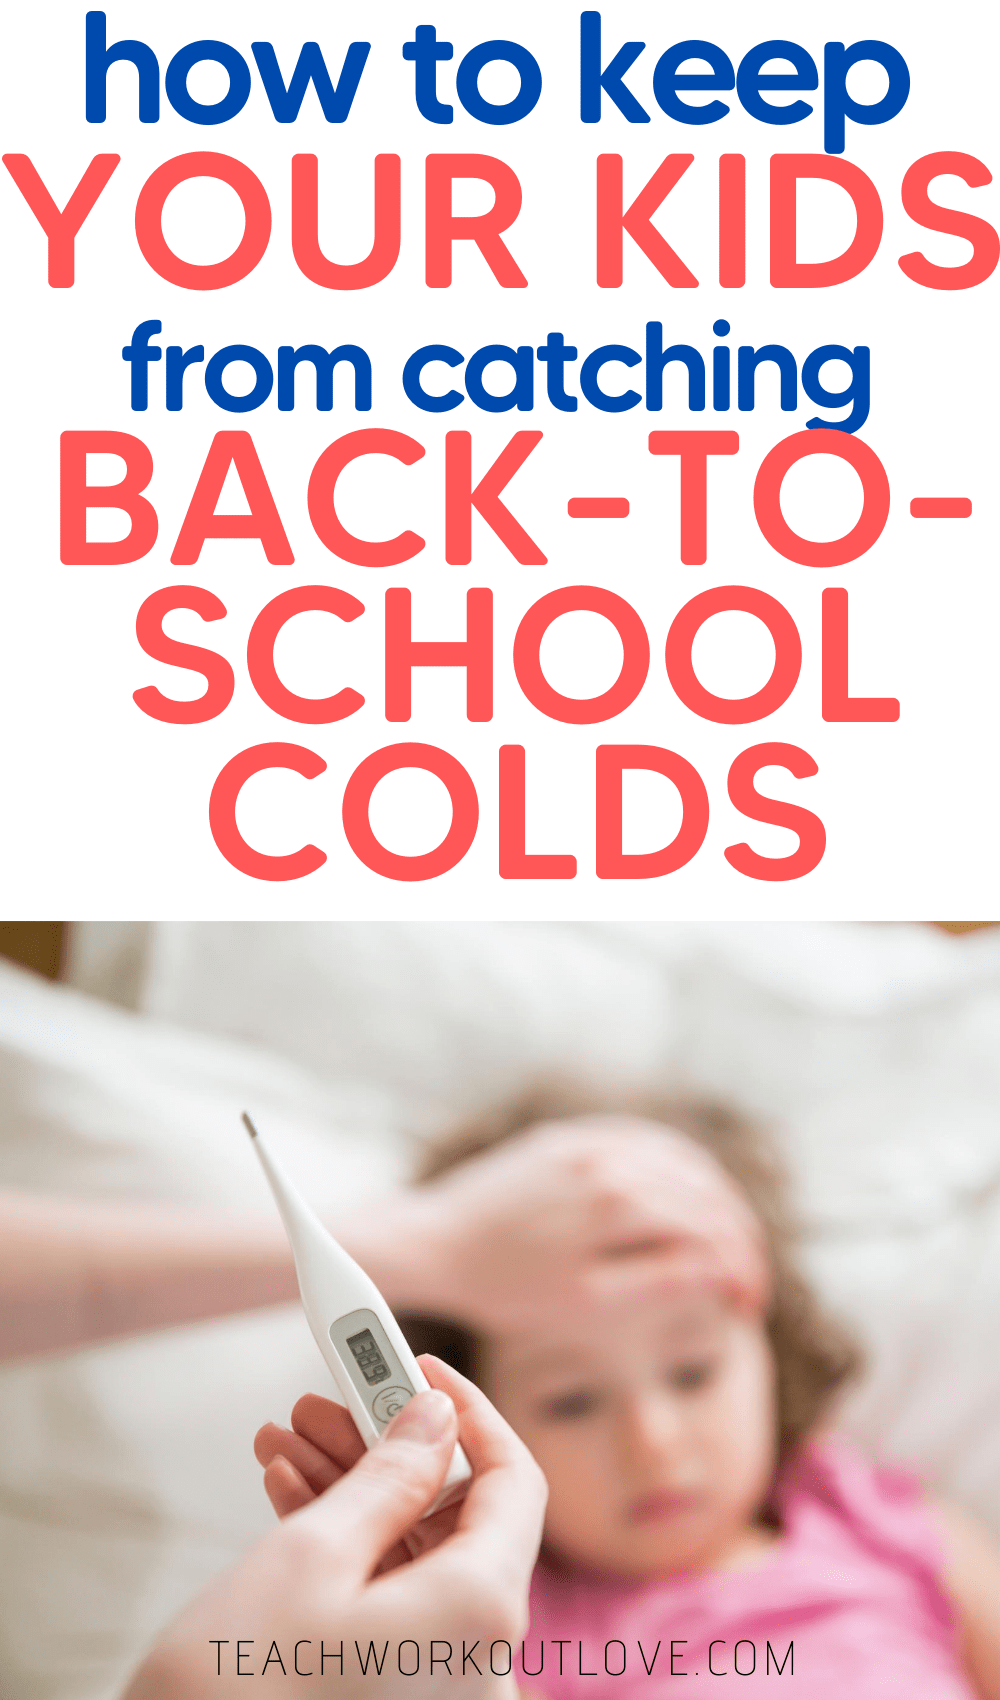 While you can't prevent your children from ever getting a cold again, here's how to reduce the chances of back-to-school colds.